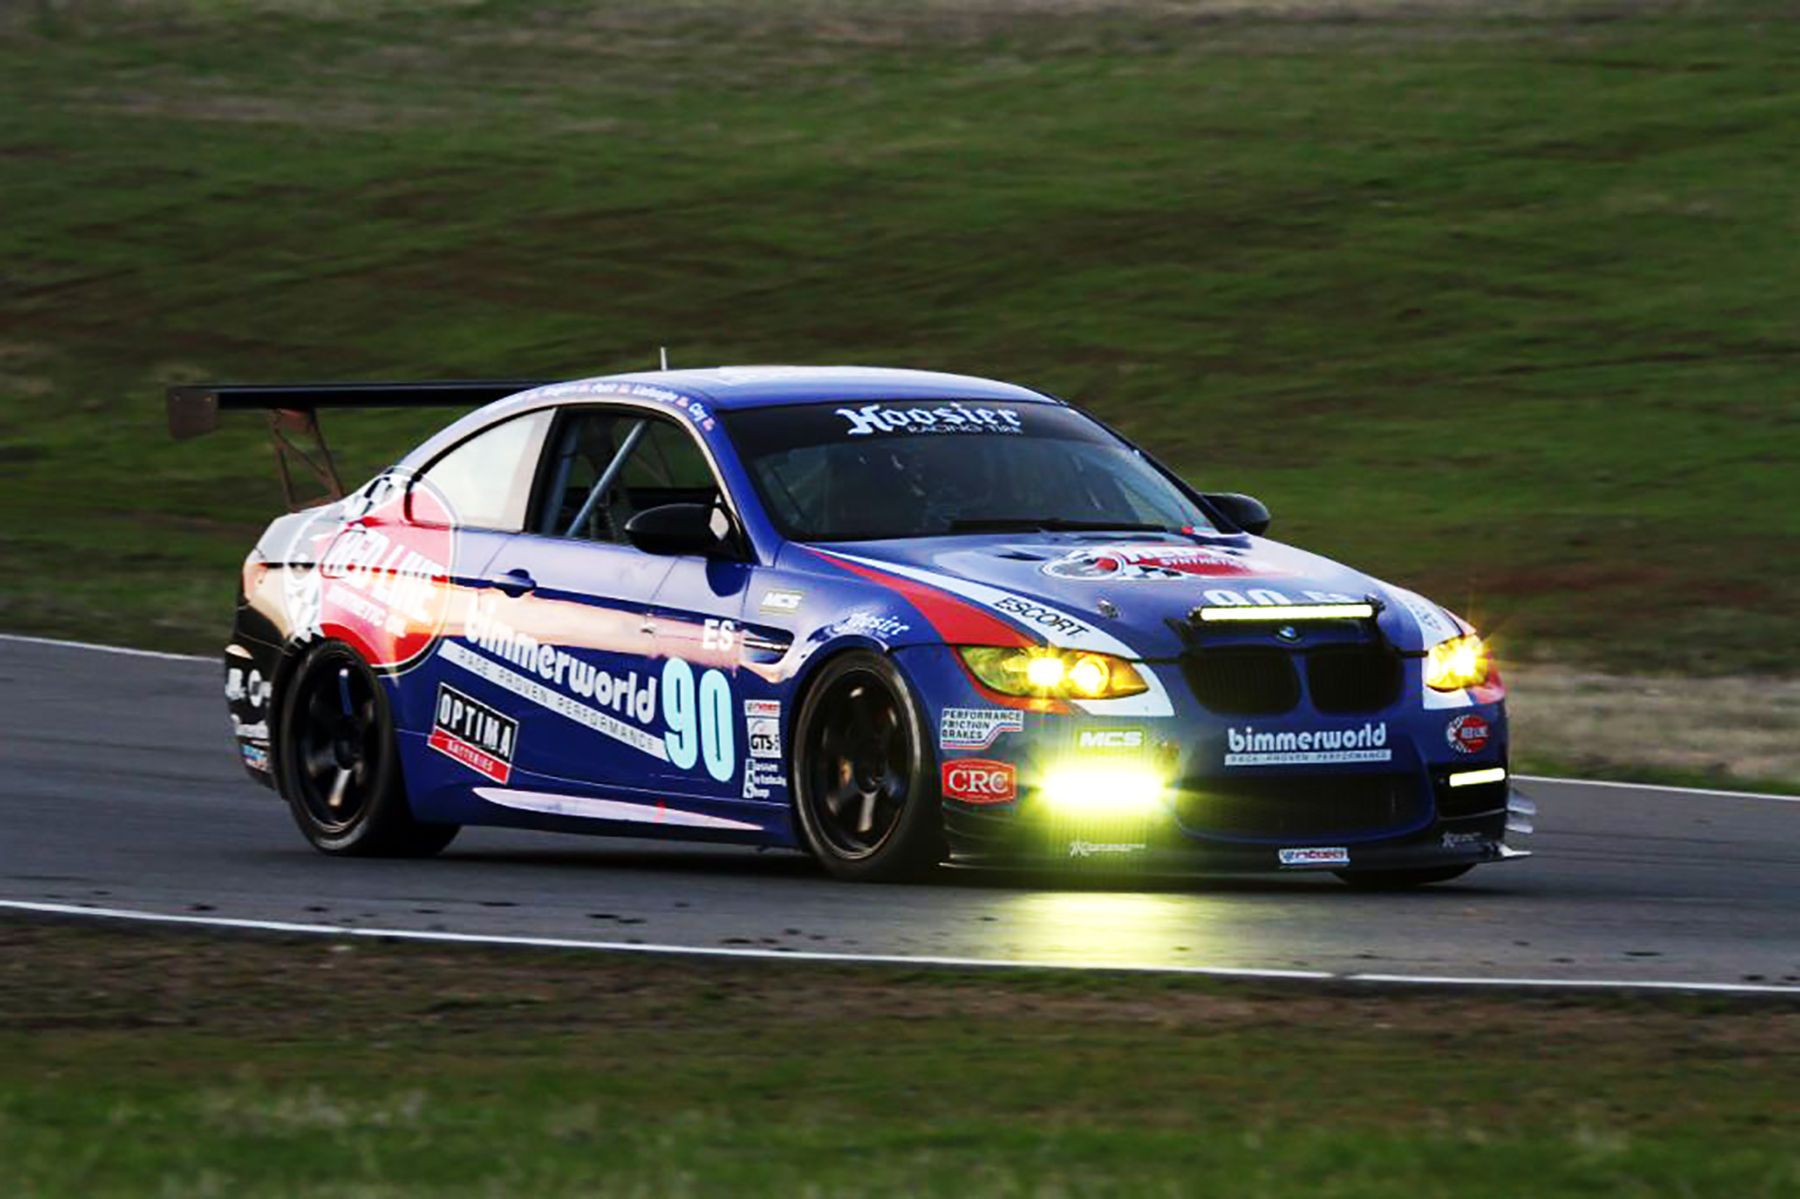 BMW    BMW on the track with Rigid Industries lights